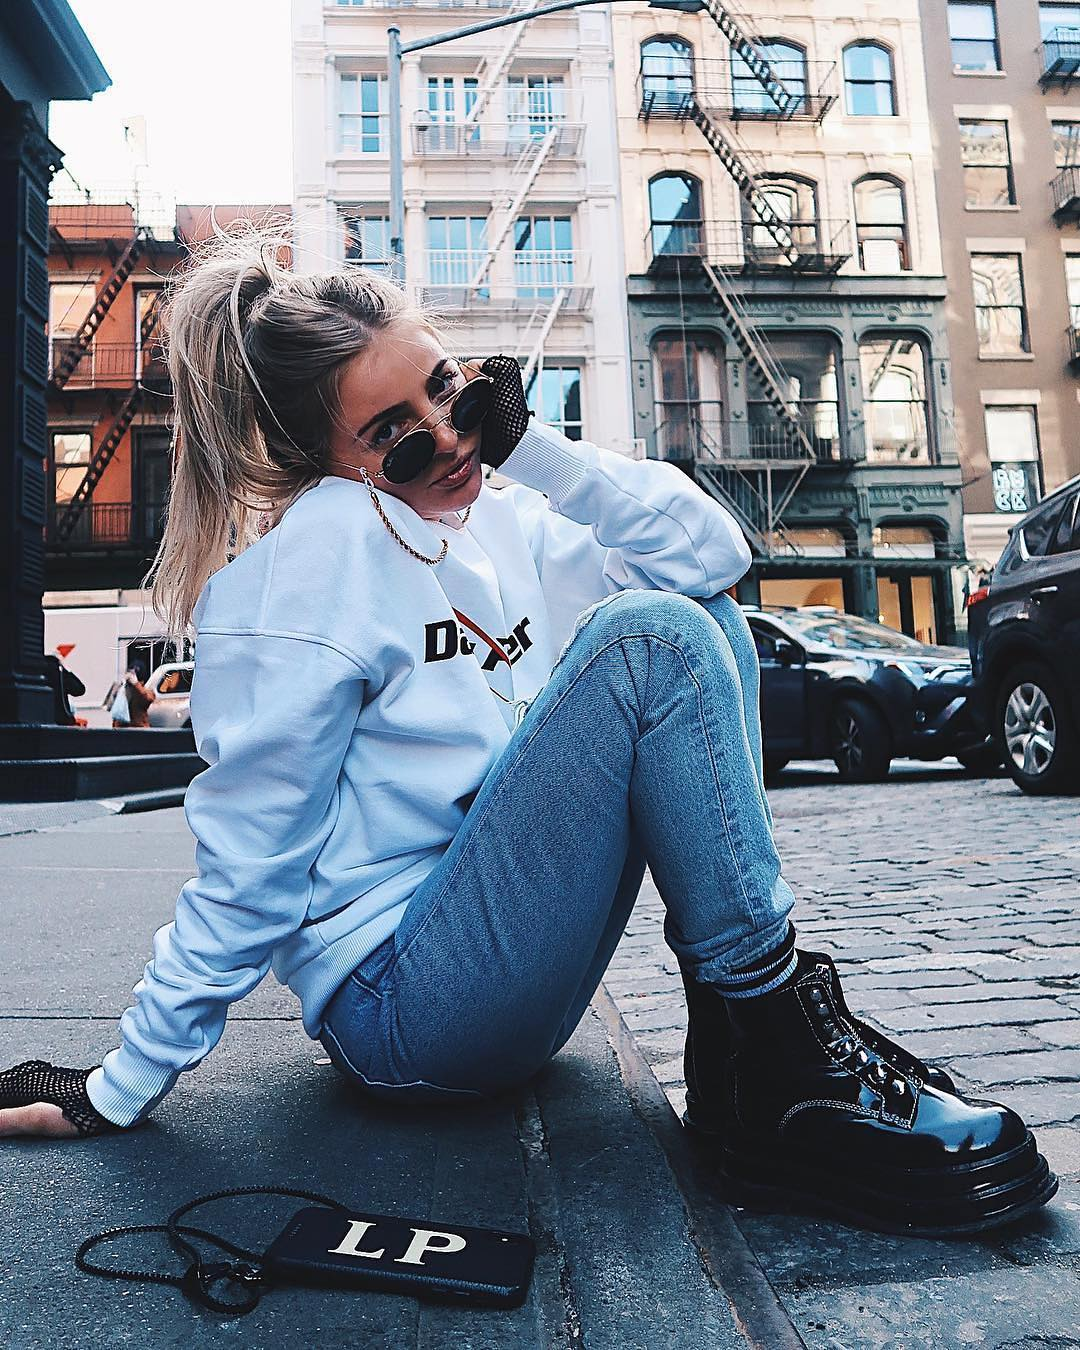 Patent combat boots, white sweatshirt and jeans for casual street hikes 2021